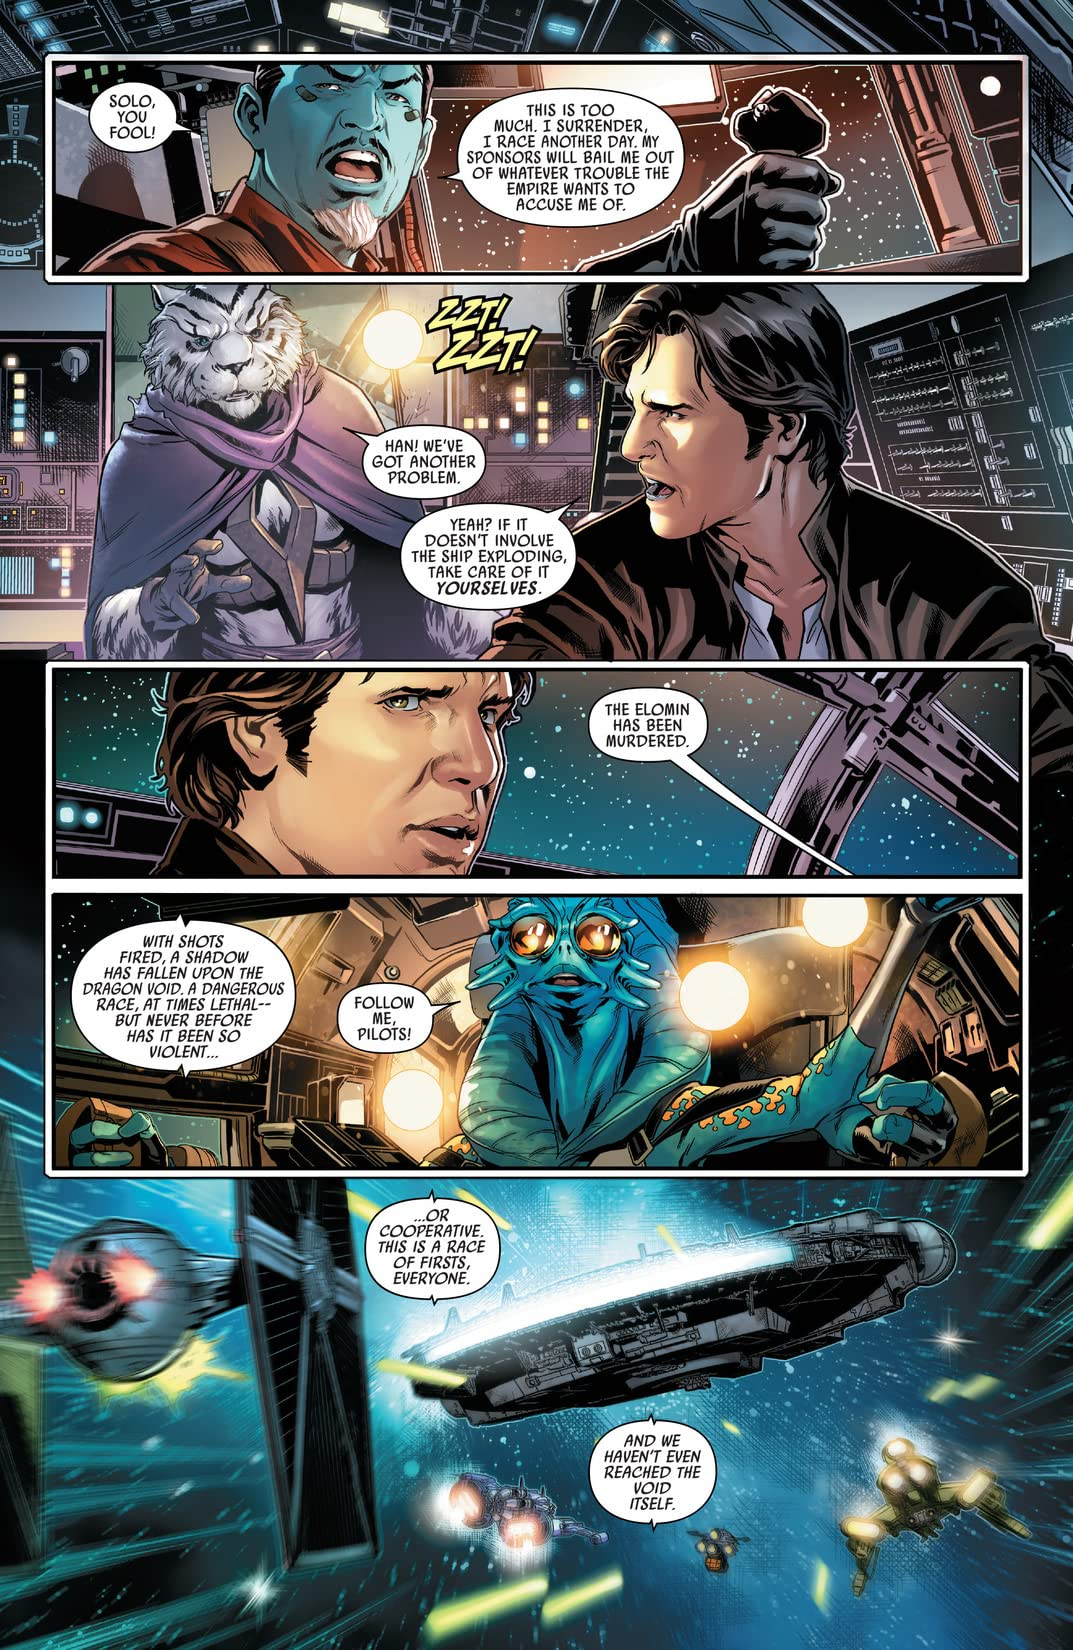 Han Solo (2016) #5 (of 5)